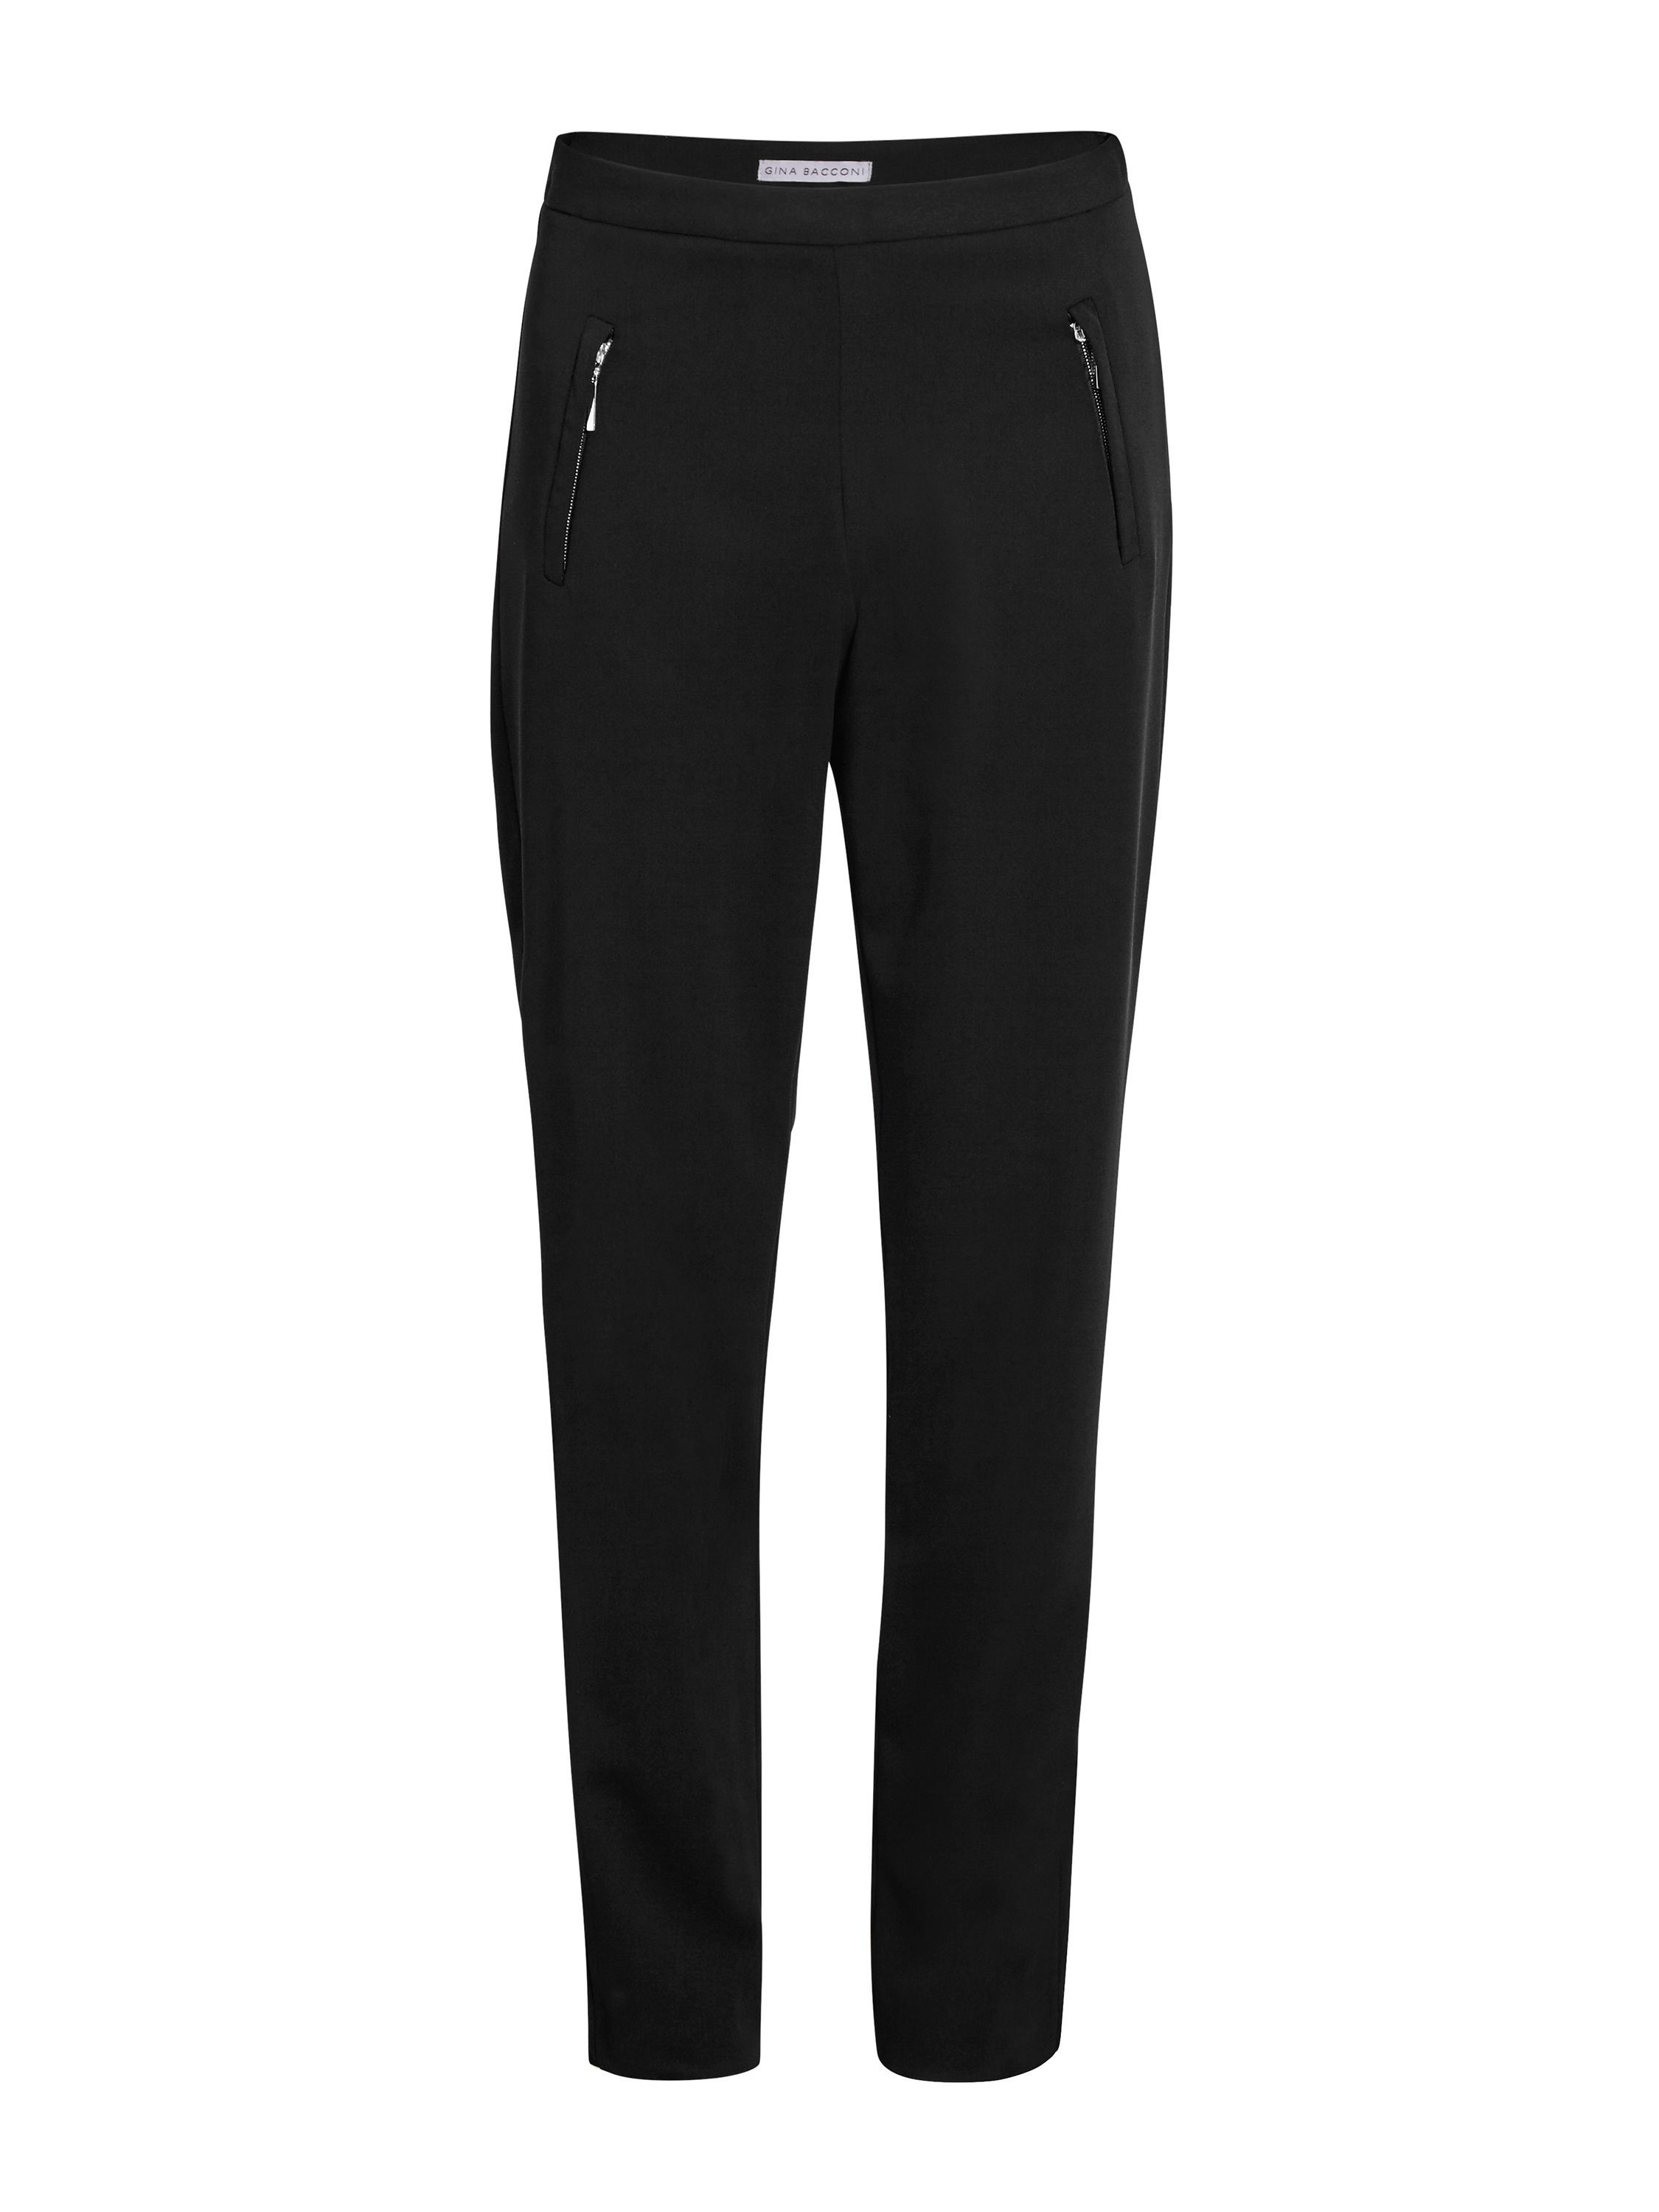 Gina Bacconi Moss crepe trouser with zip detail, Black